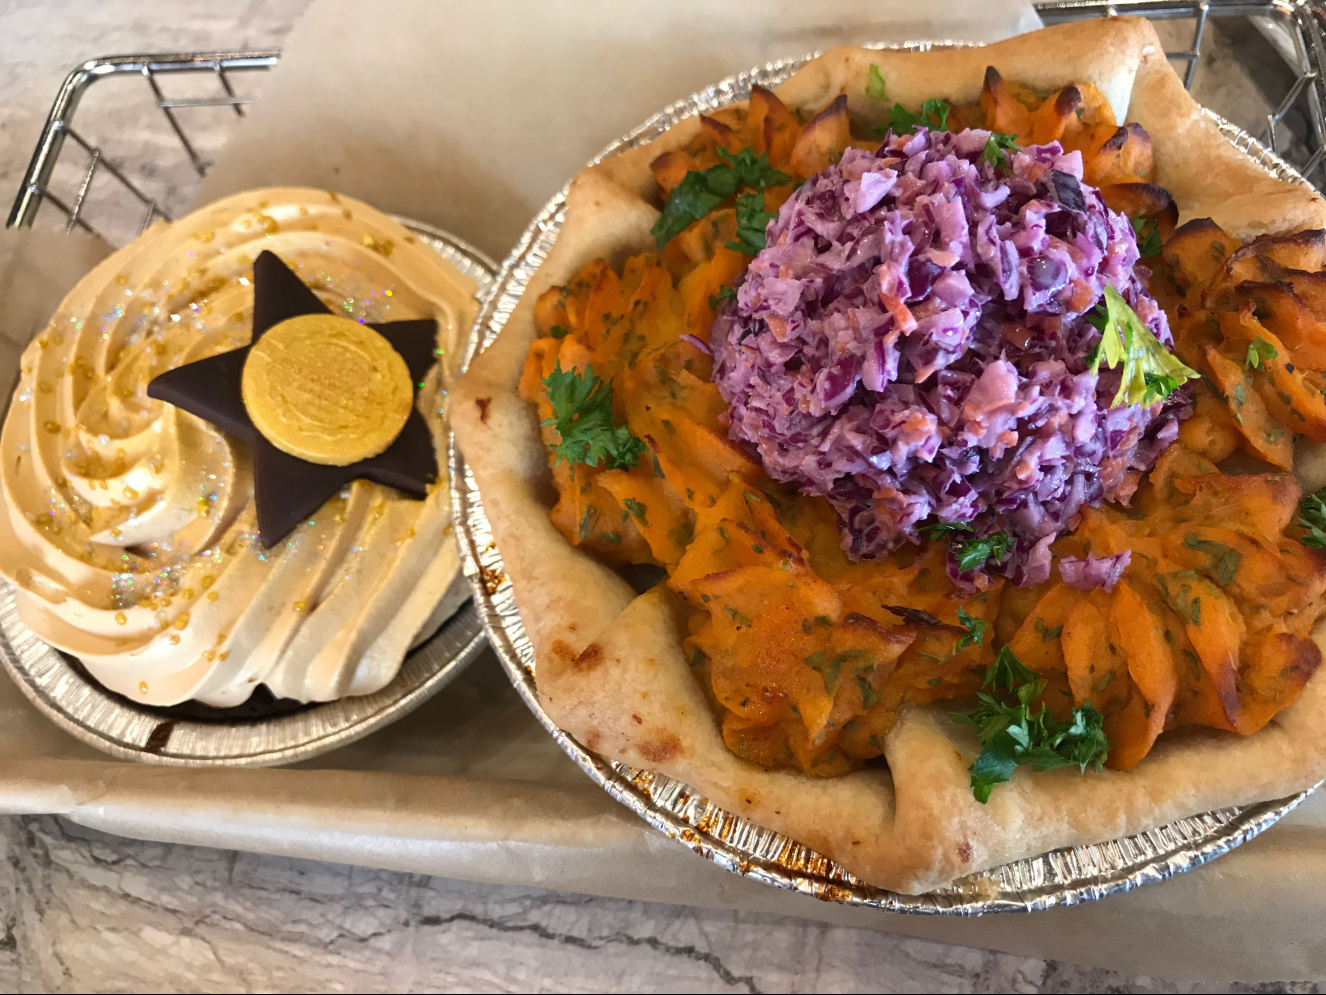 My favorite savory pie: the Pulled Pork and Sweet Potato (on right). Paired with a sumptuous Chocolate Dulce de Leche pie (left).